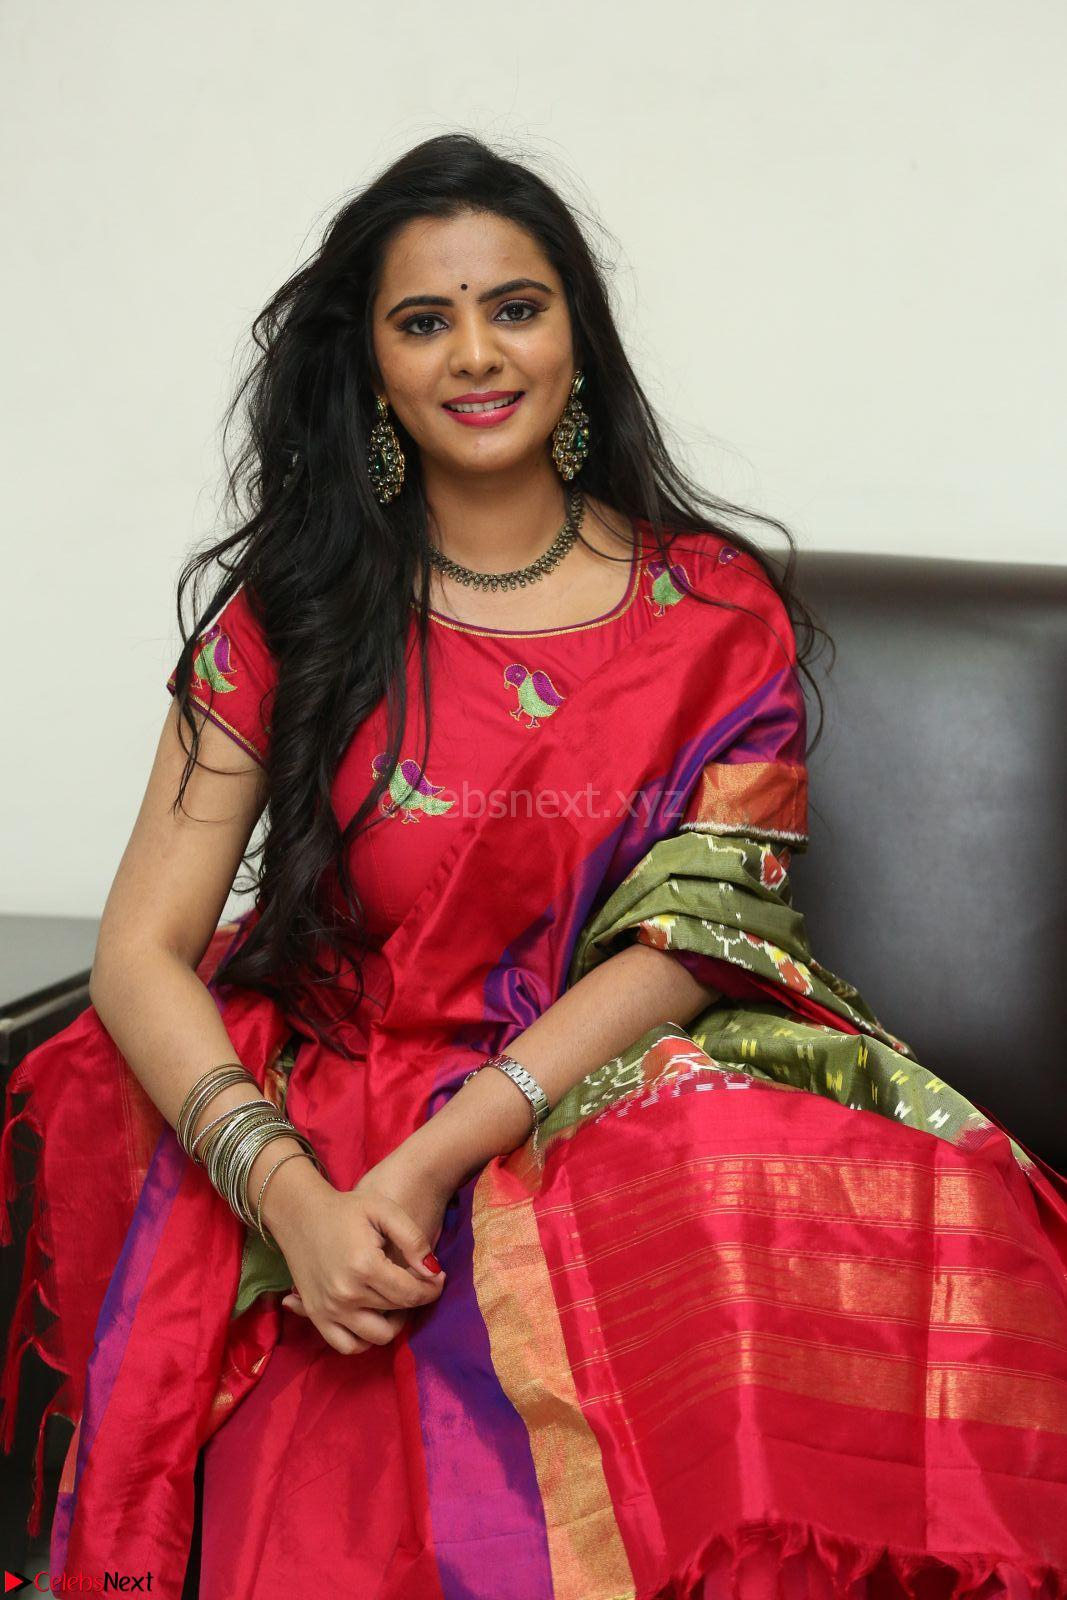 Manasa In Pink Salwar At Fashion Designer Son Of Ladies Tailor Press Meet Pics Exclusive 33 Manasa In Pink Salwar At Fashion Designer Son Of Ladies Tailor Press Meet Pics Celebsnext Exclusive